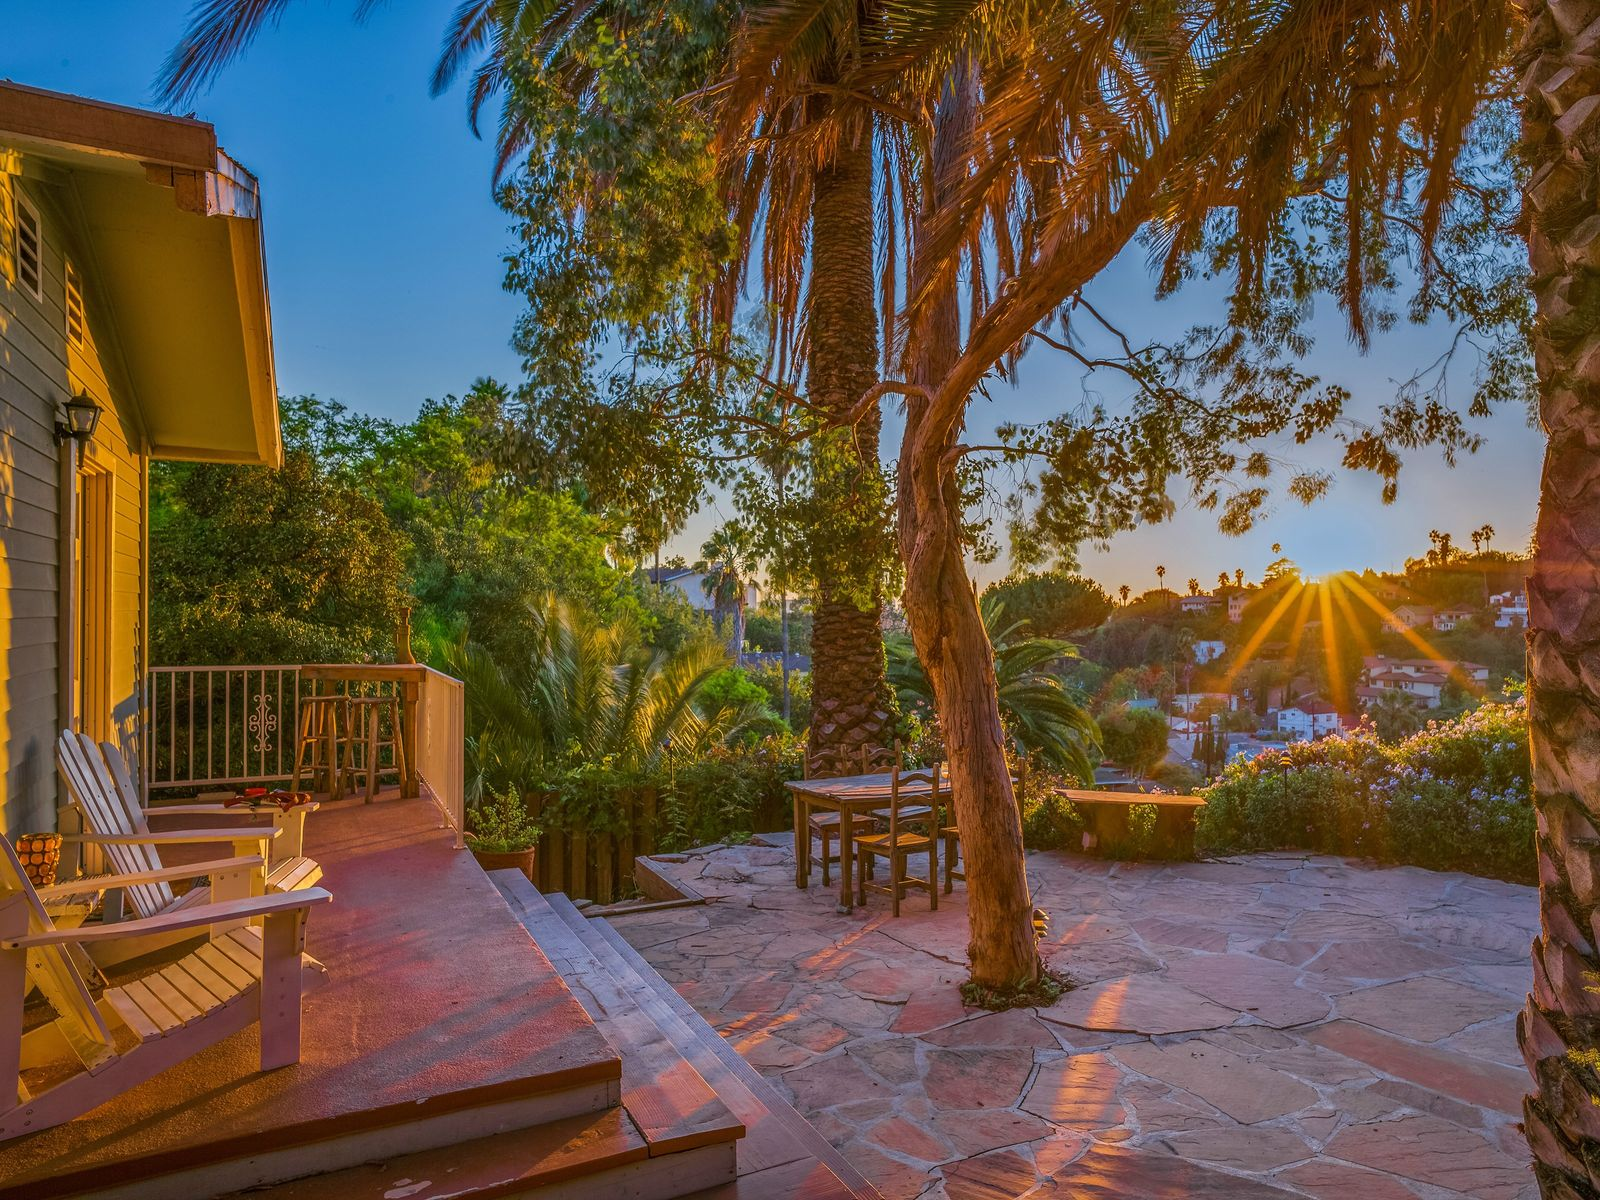 Silver Lake Pied-a-Terre, Los Angeles CA Single Family Home - Los Angeles Real Estate